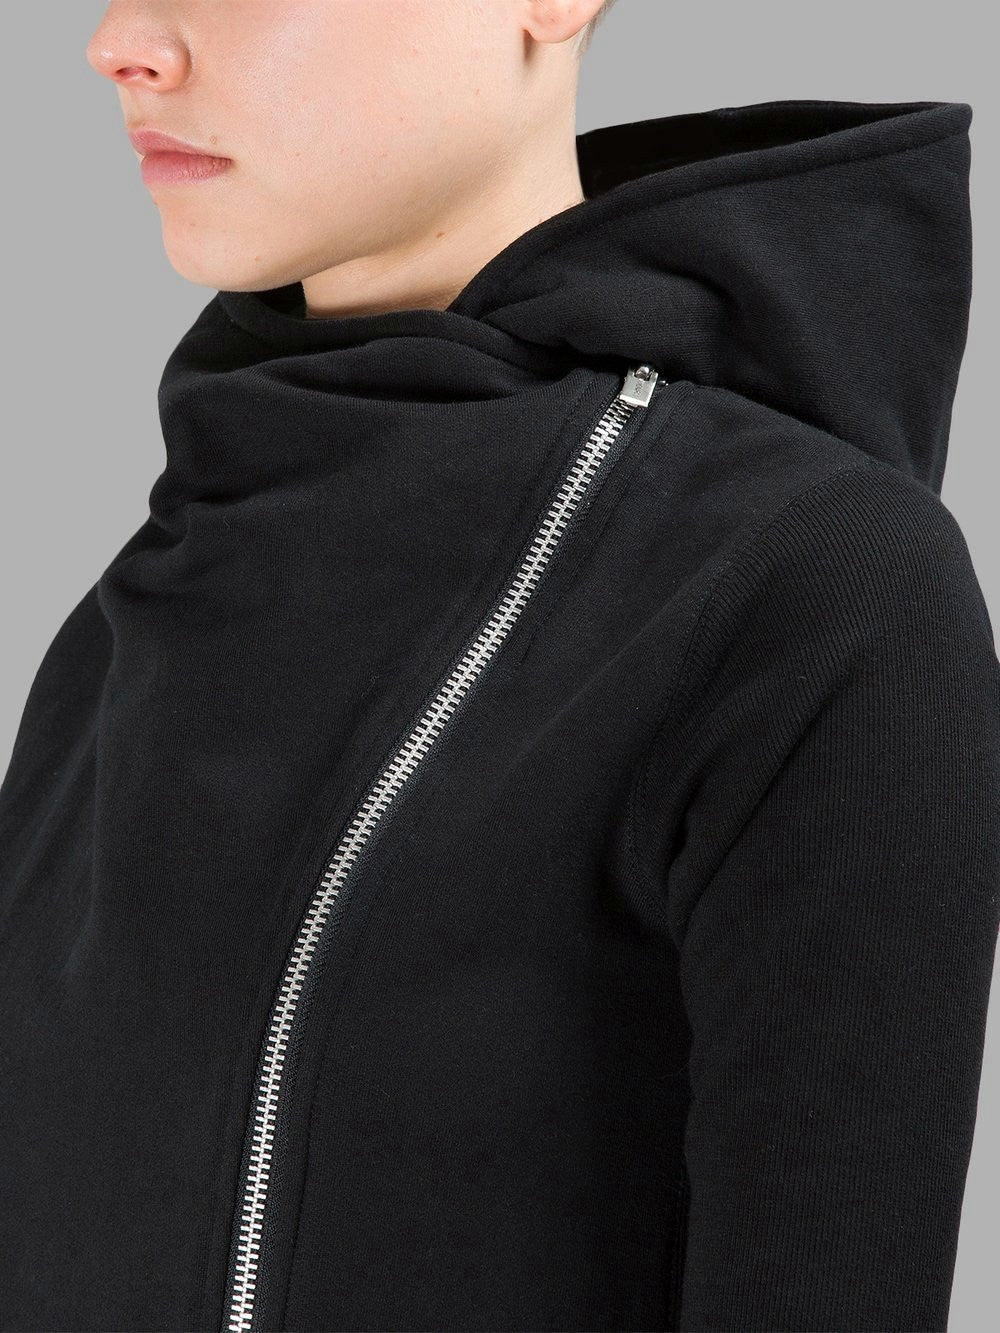 Asymmetric Front Cut // Asymmetric Zip Closure // Overlong Rib Sleeve Hoodie